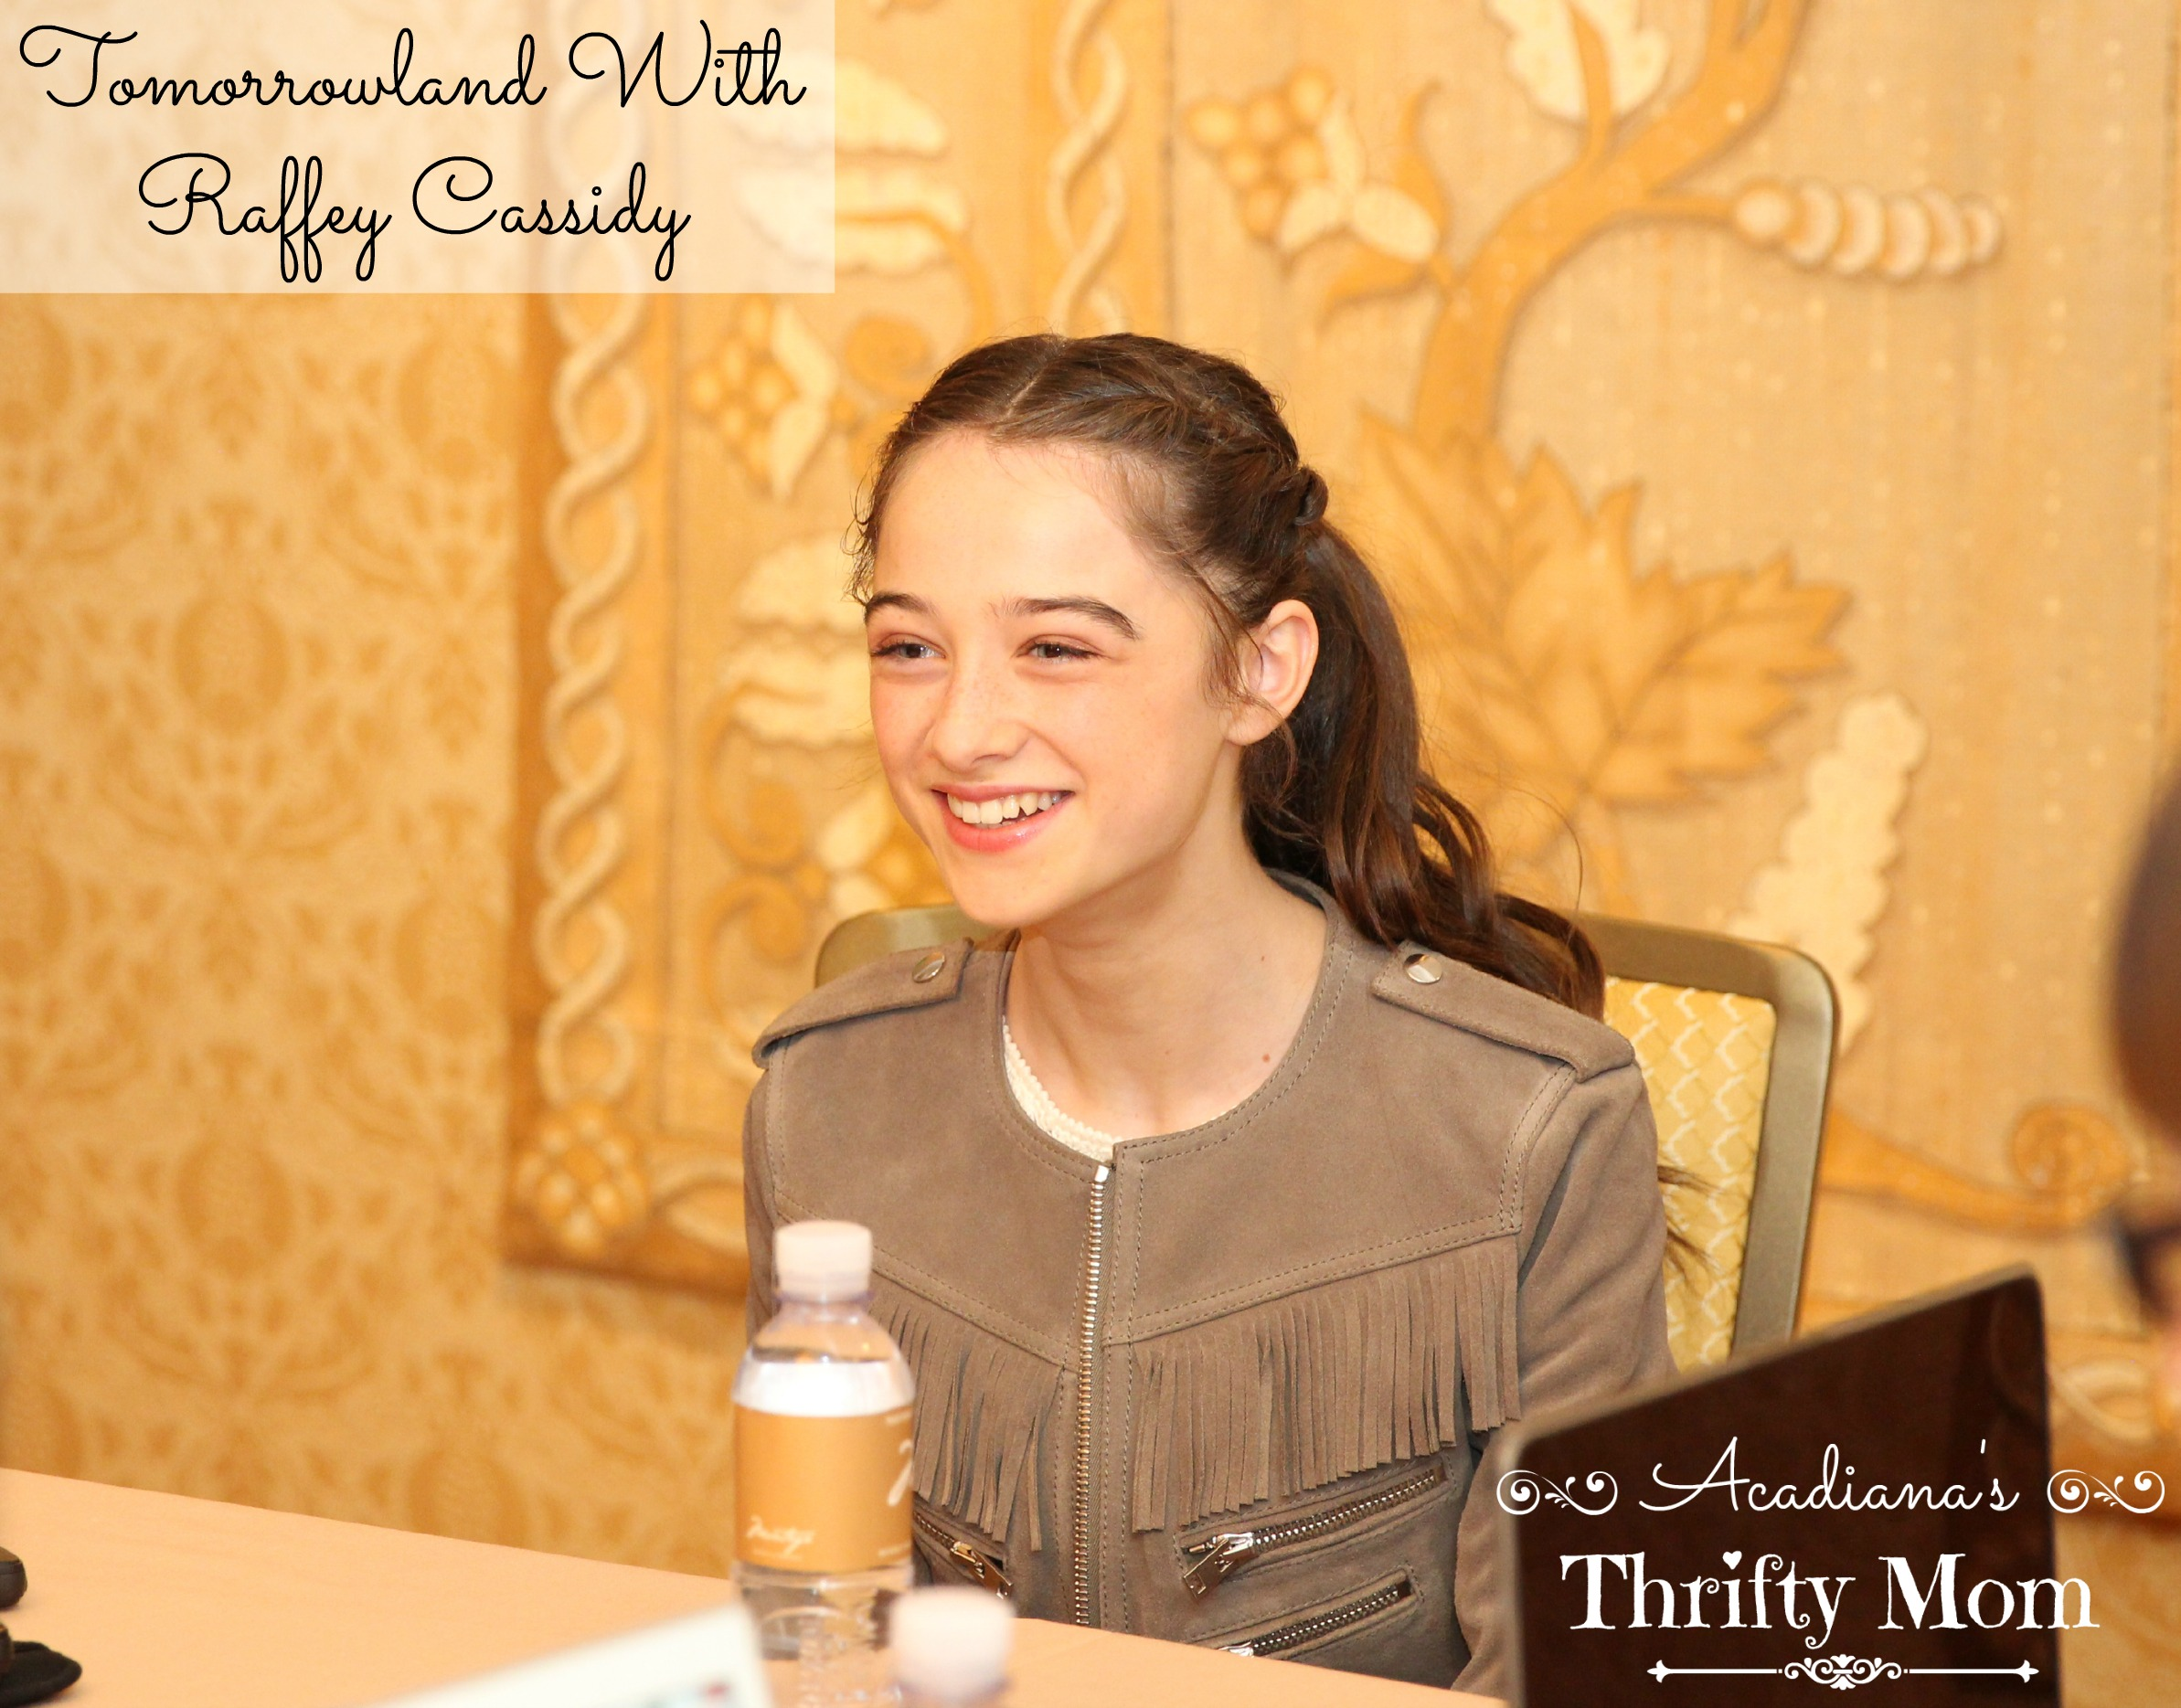 Learning to Drive In Tomorrowland With Raffey Cassidy #TomorrowlandEvent